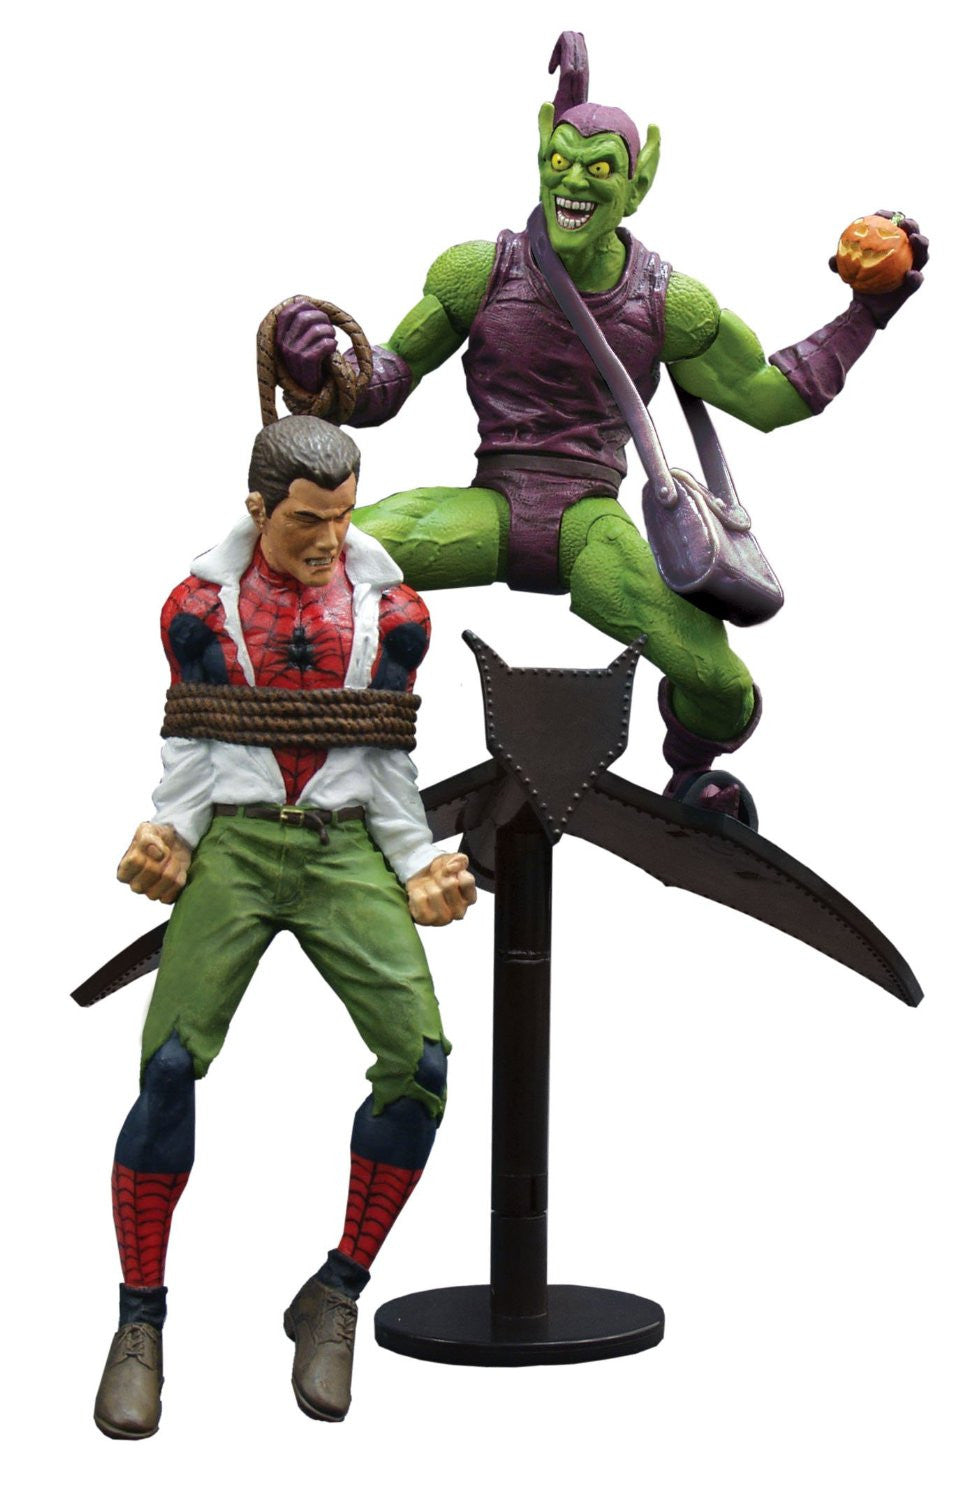 Marvel Select Classic Green Goblin vs. Spider Man Action Figure-Diamond Select toys- www.superherotoystore.com-Action Figure - 1